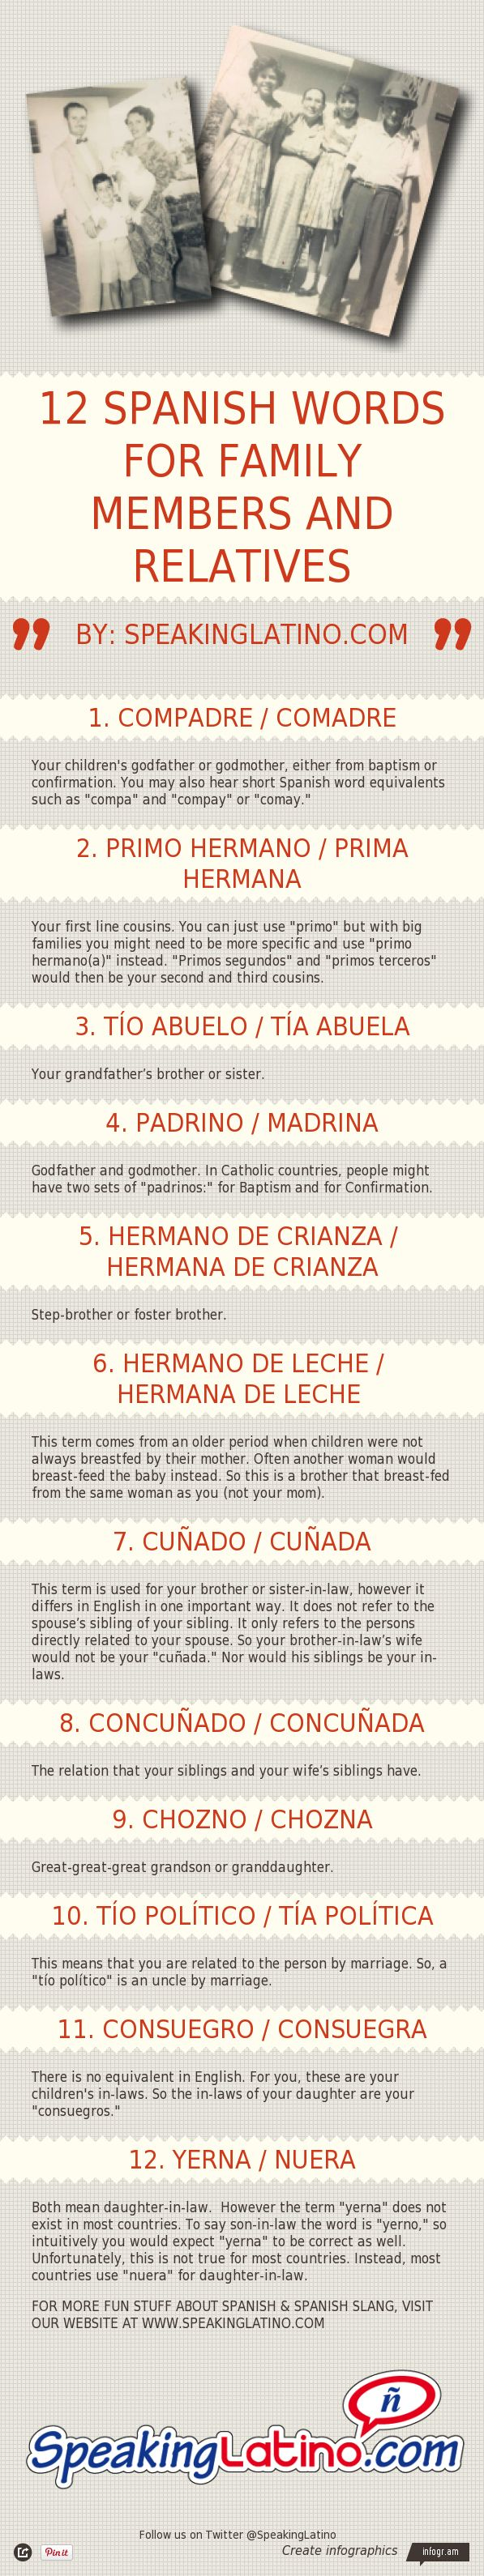 #Infographic: Comay, Yerna, Chozno & Other Spanish Words for Family Members | Spanish words for family members I learned in Puerto Rico. Words for brother-in-law, foster brother and godmother, etc. also used in Latin America. Via http://www.speakinglatino.com/puerto-rican-family-tree/